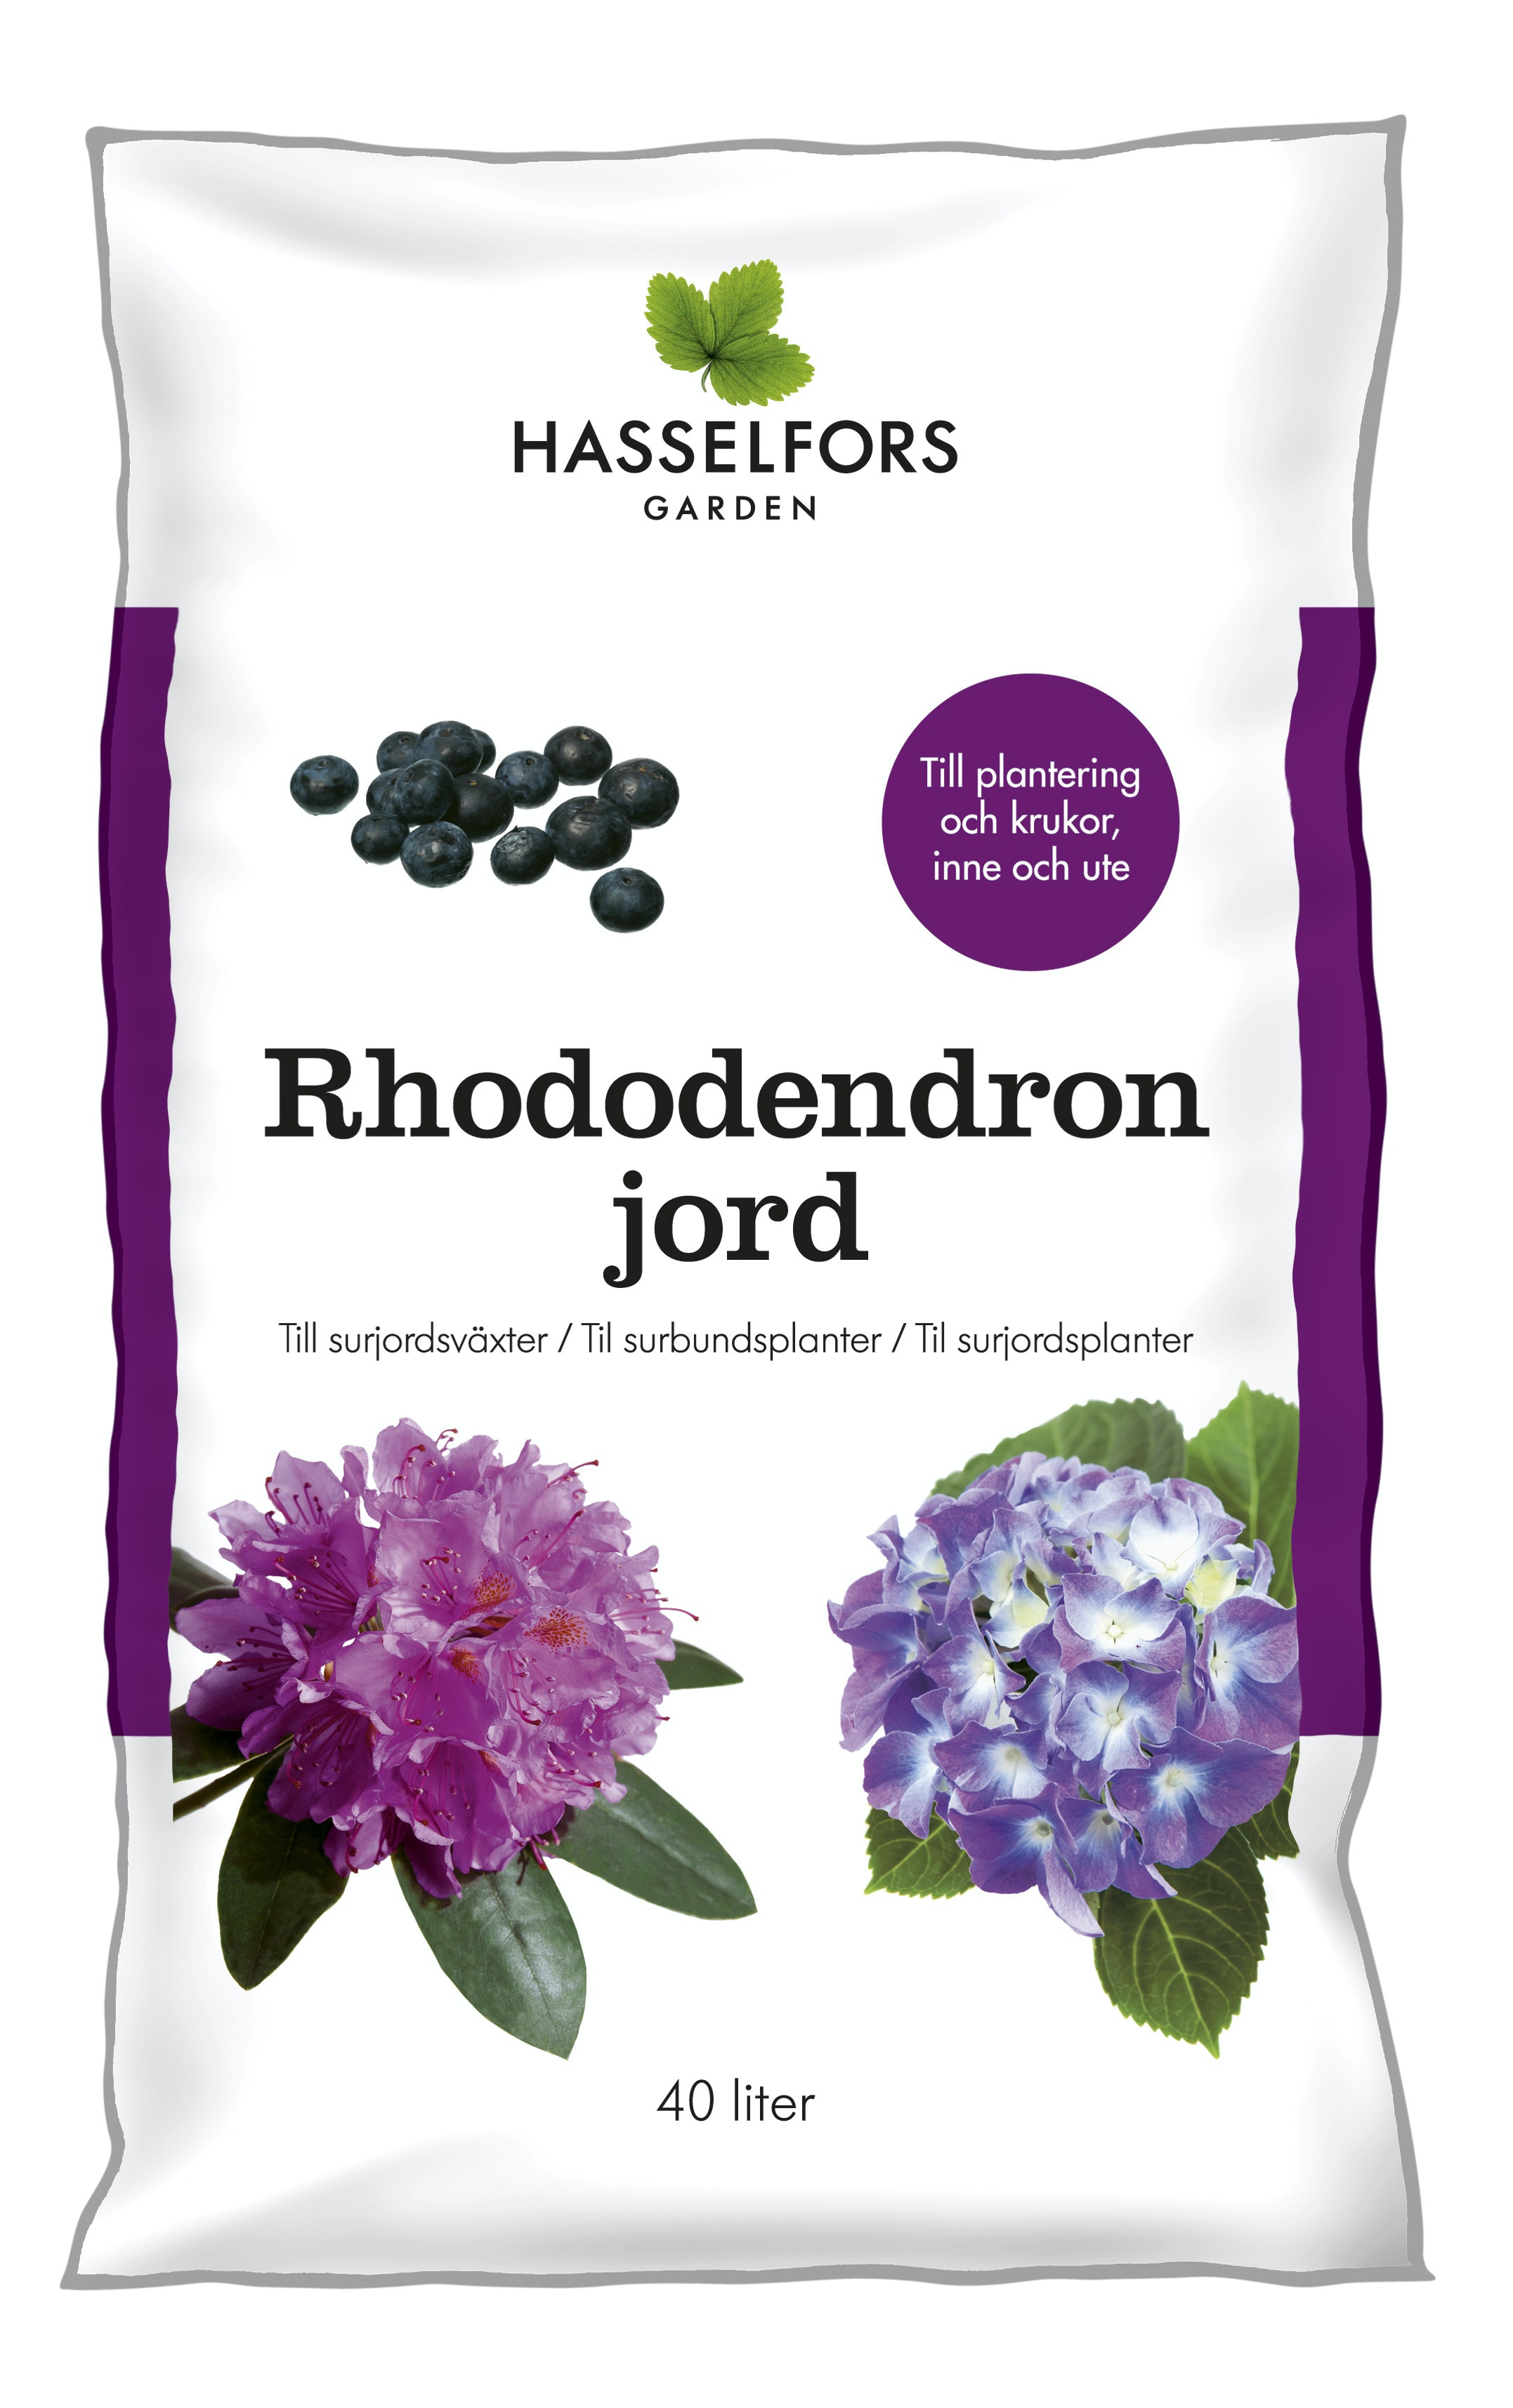 Rhododendronjord Hasselfors 40L